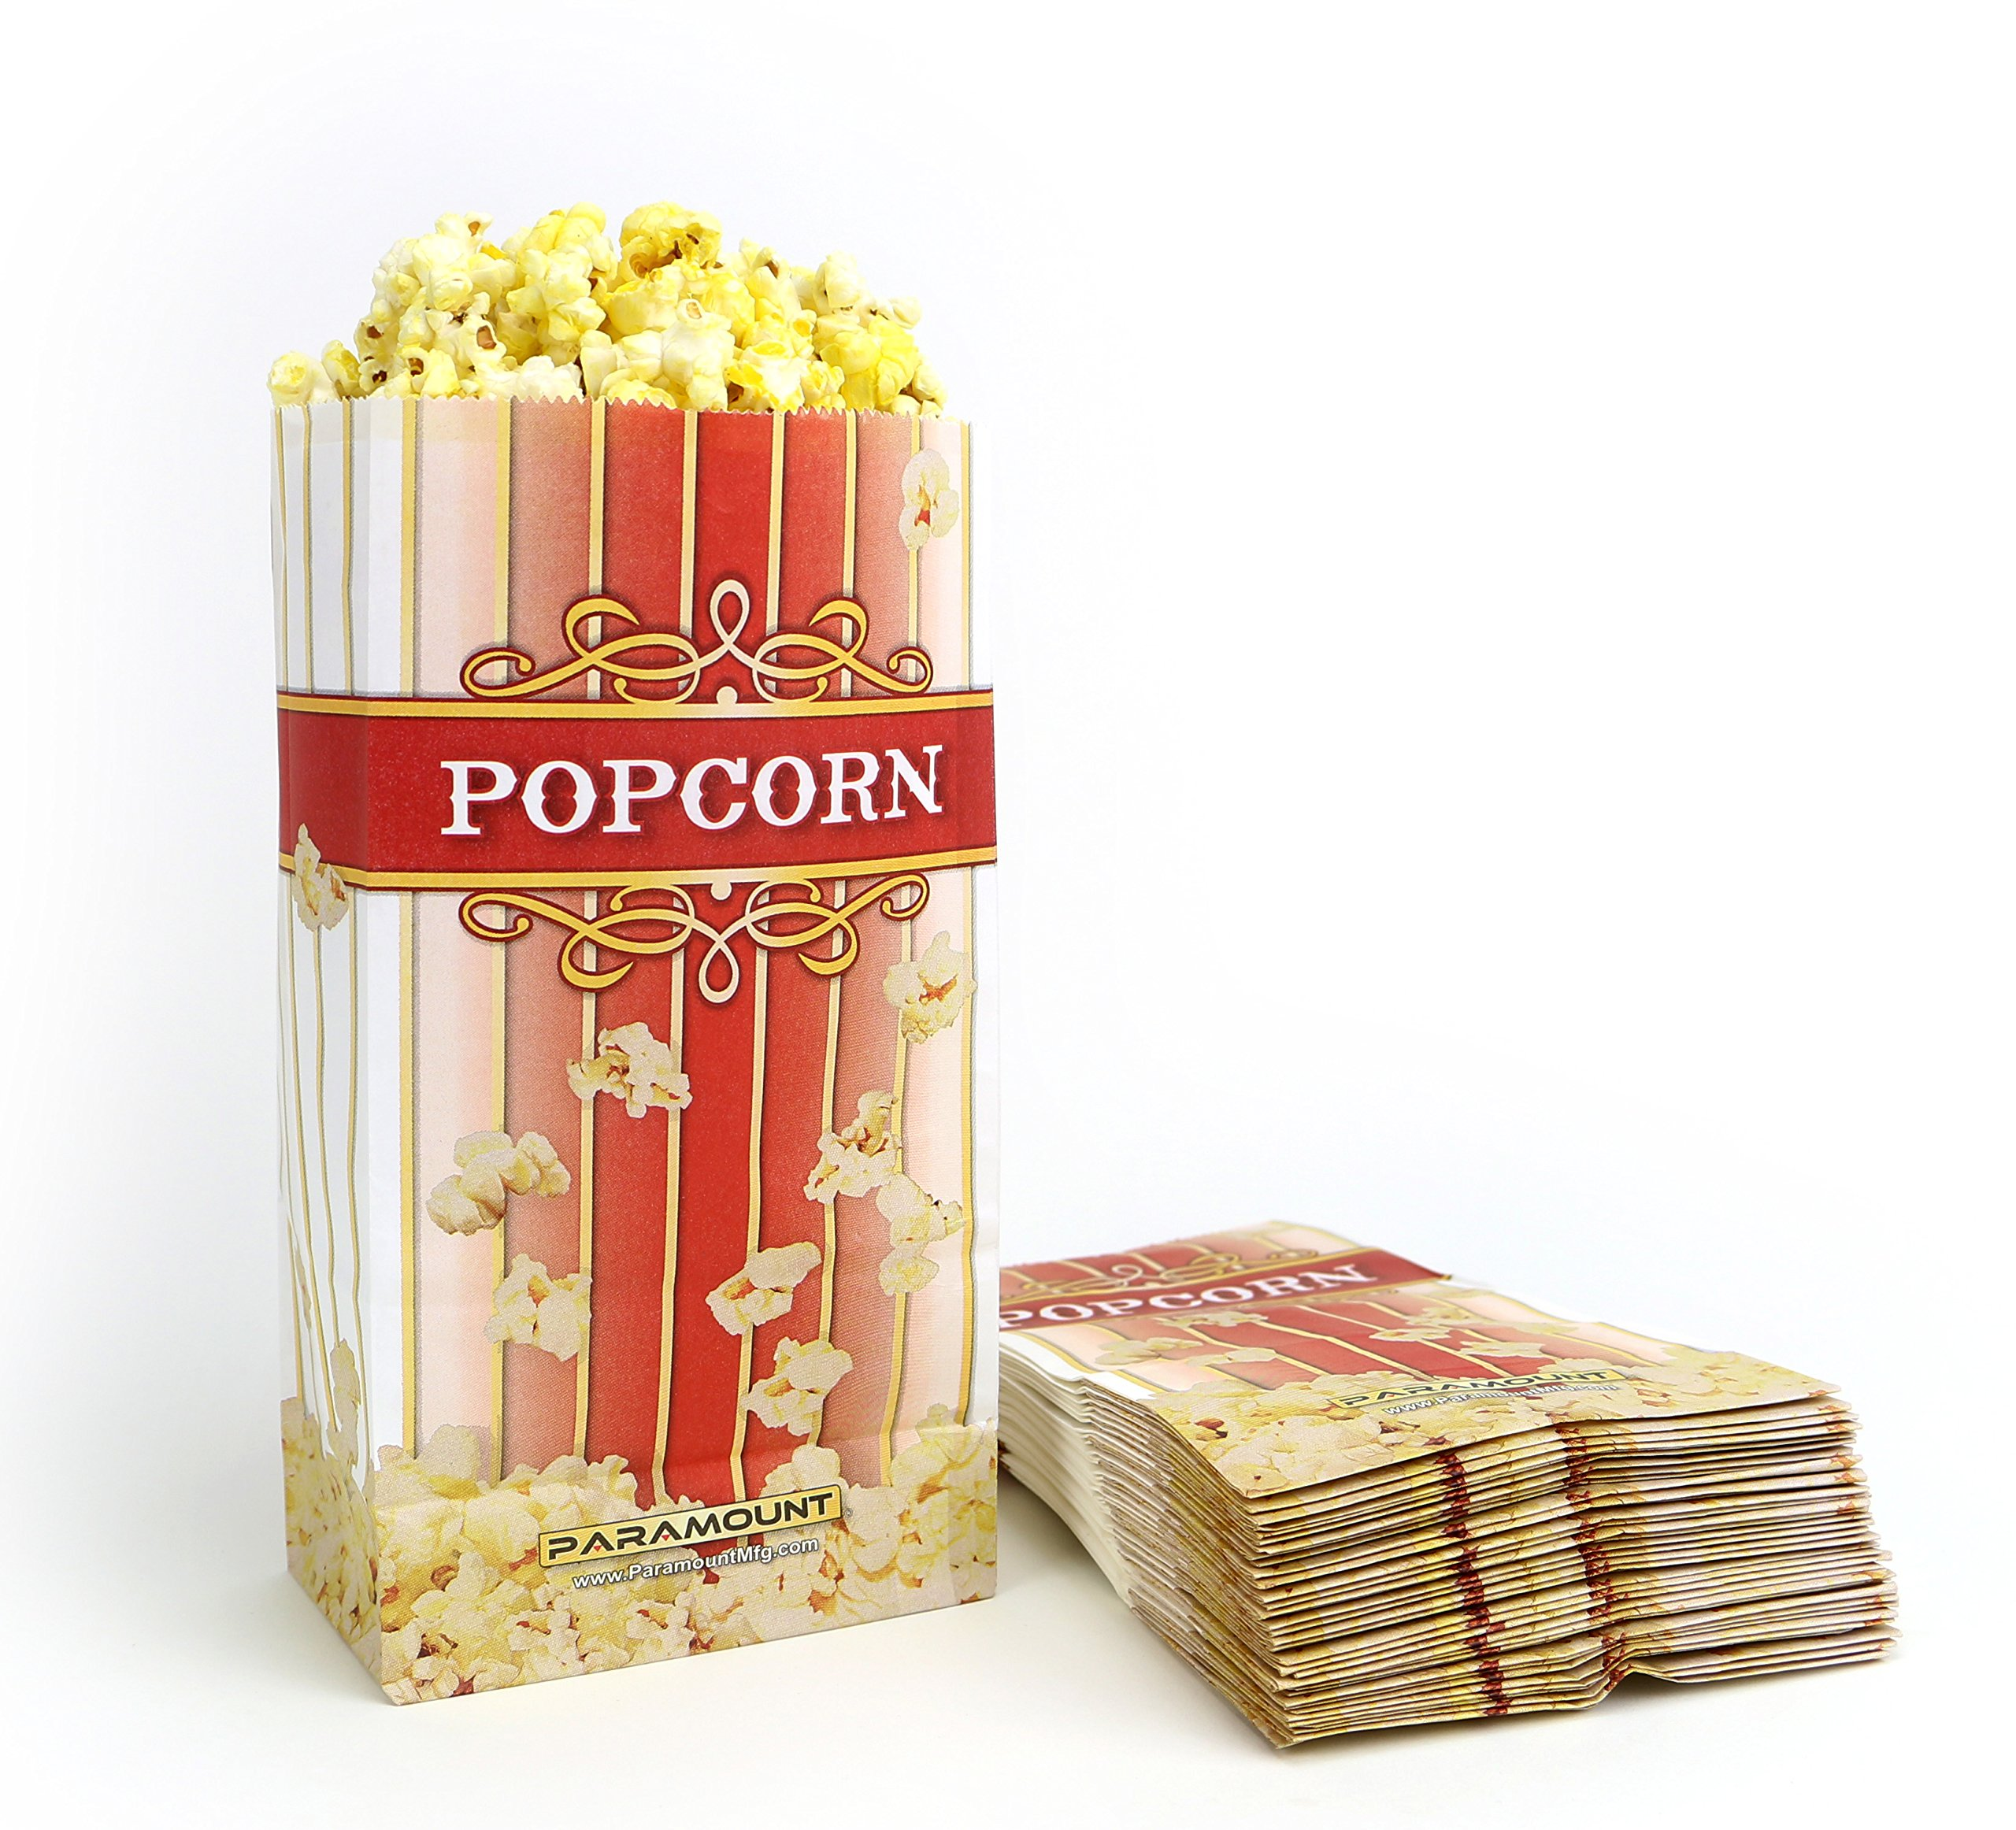 100 Popcorn Serving Bags - 'Large' Standalone Flat Bottom Paper Bag Style by Paramount